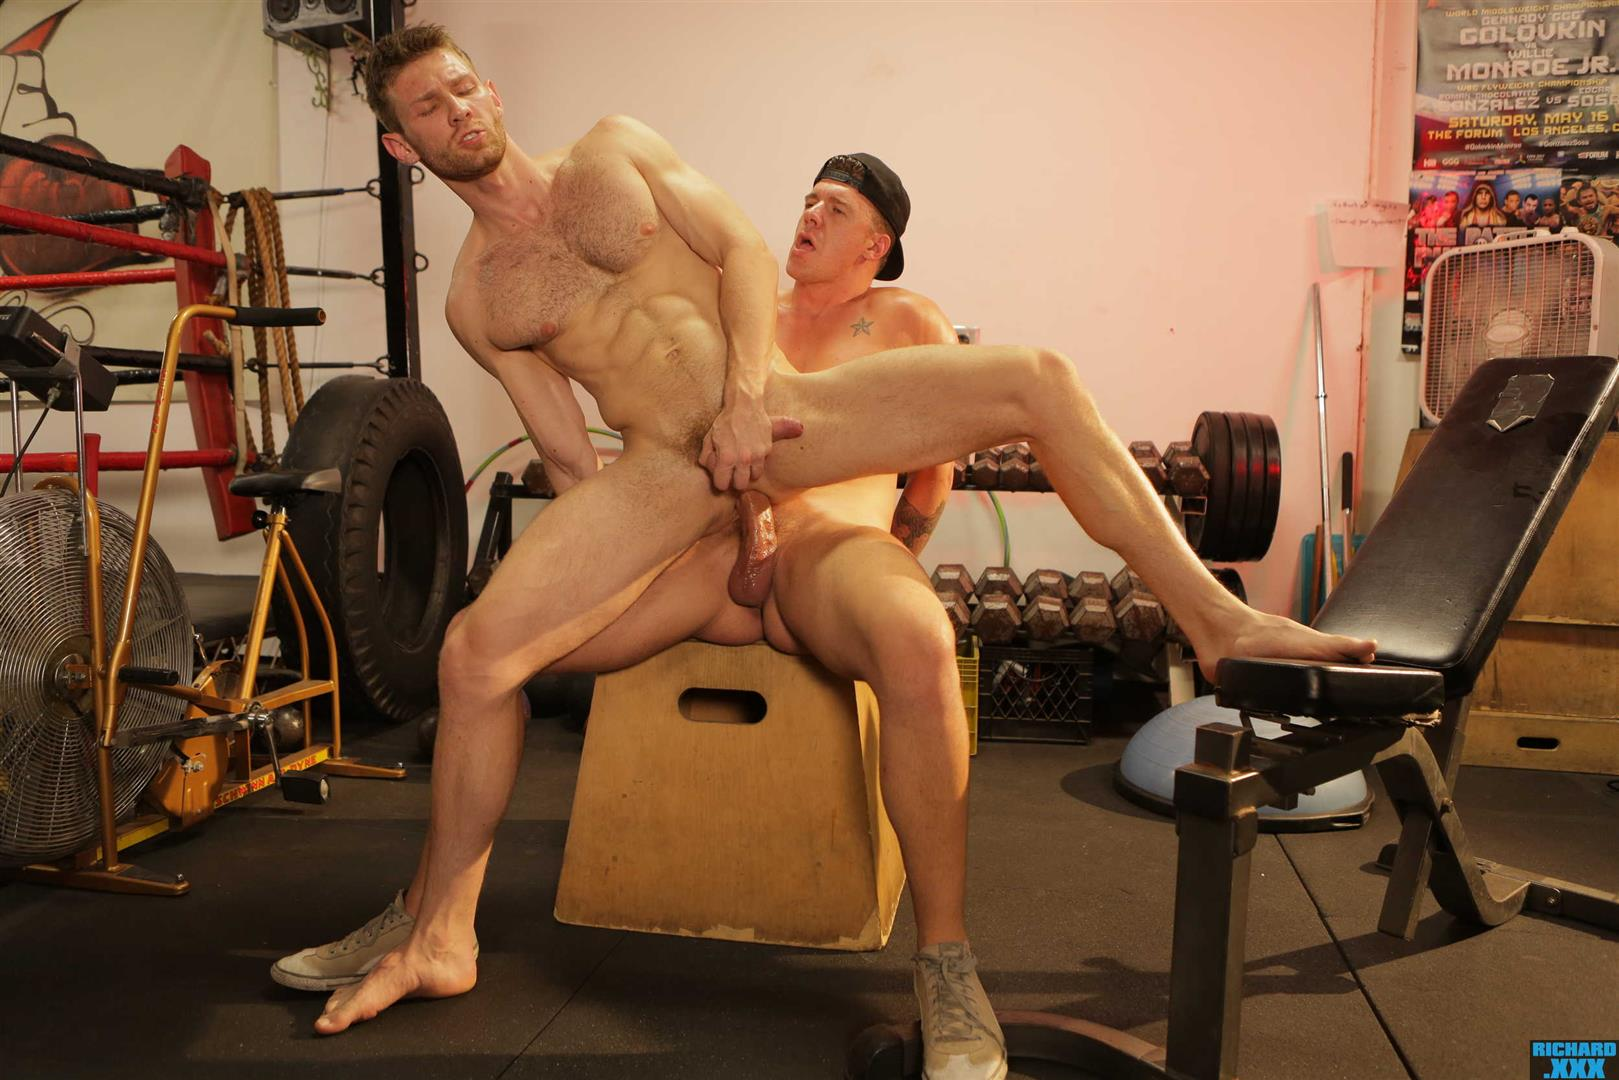 Richard-XXX-Jacob-Peterson-and-JJ-Knight-Big-Dick-Guys-Bareback-Sex-At-Gym-24 Boxing Buddies JJ Knight Barebacks Jacob Peterson At The Gym